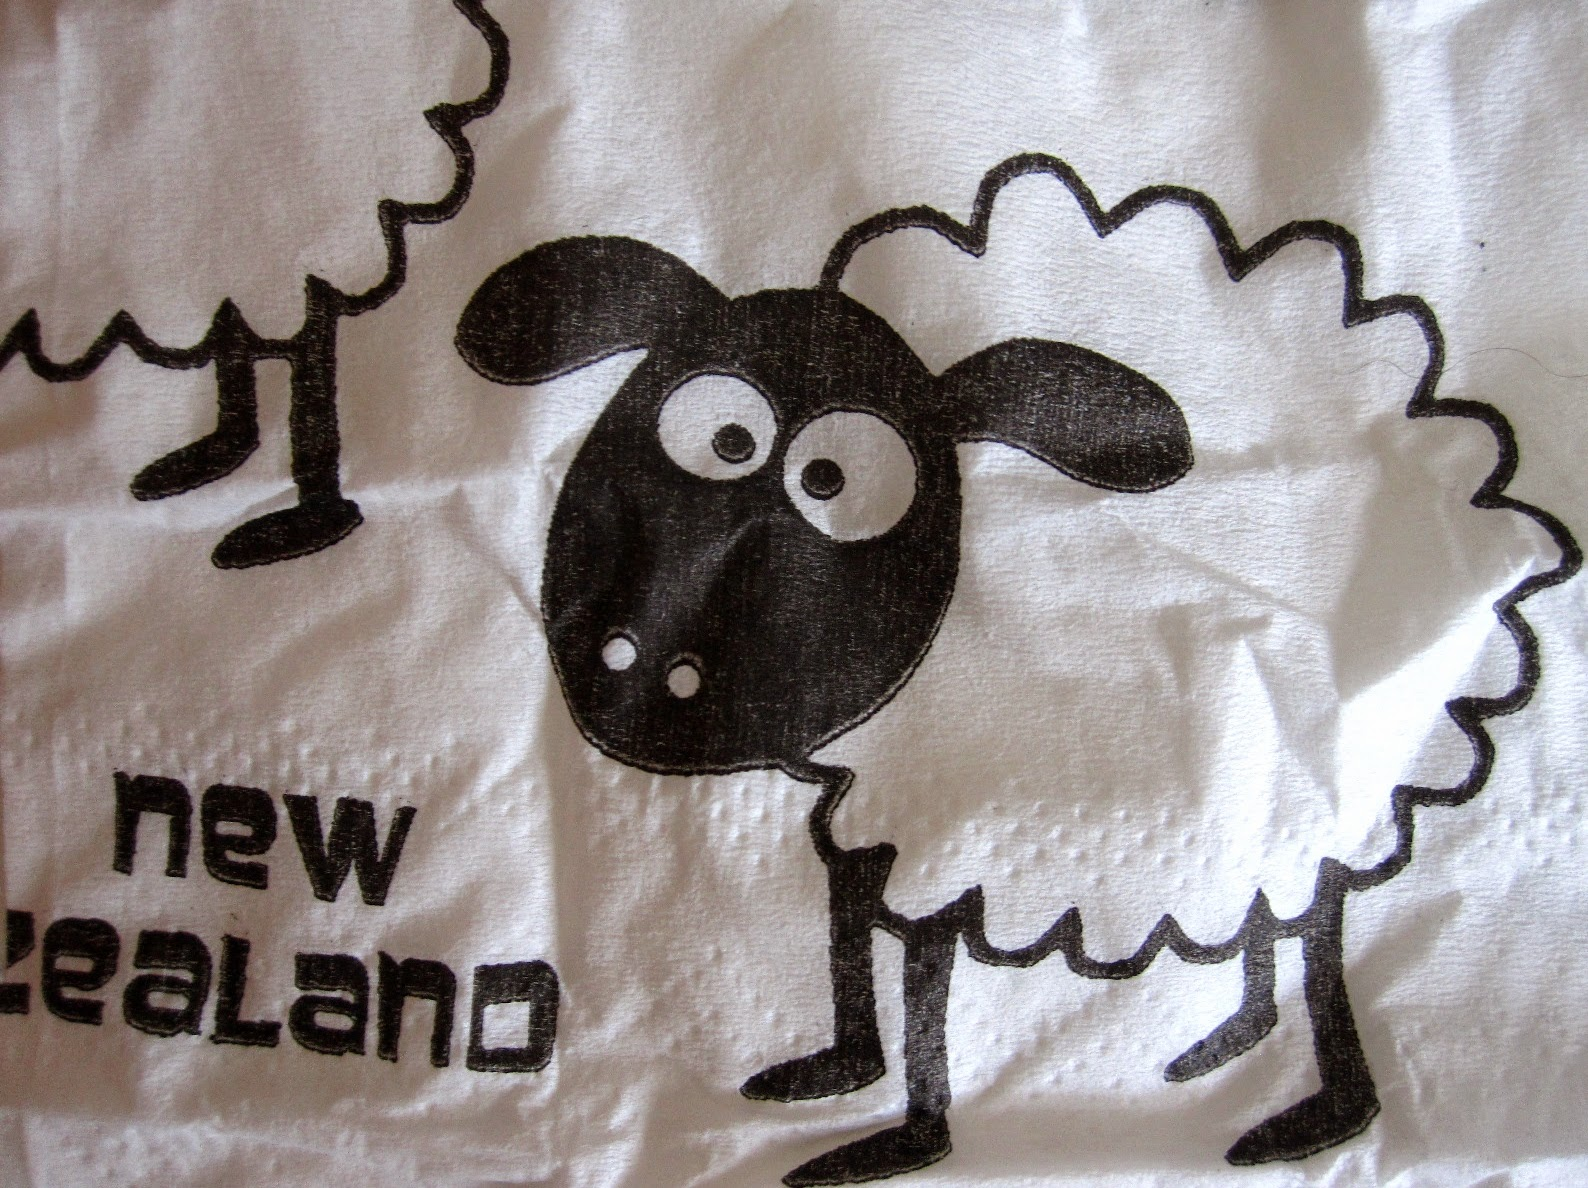 Cartoon of a sheep with the words 'New Zealand' written next to it.